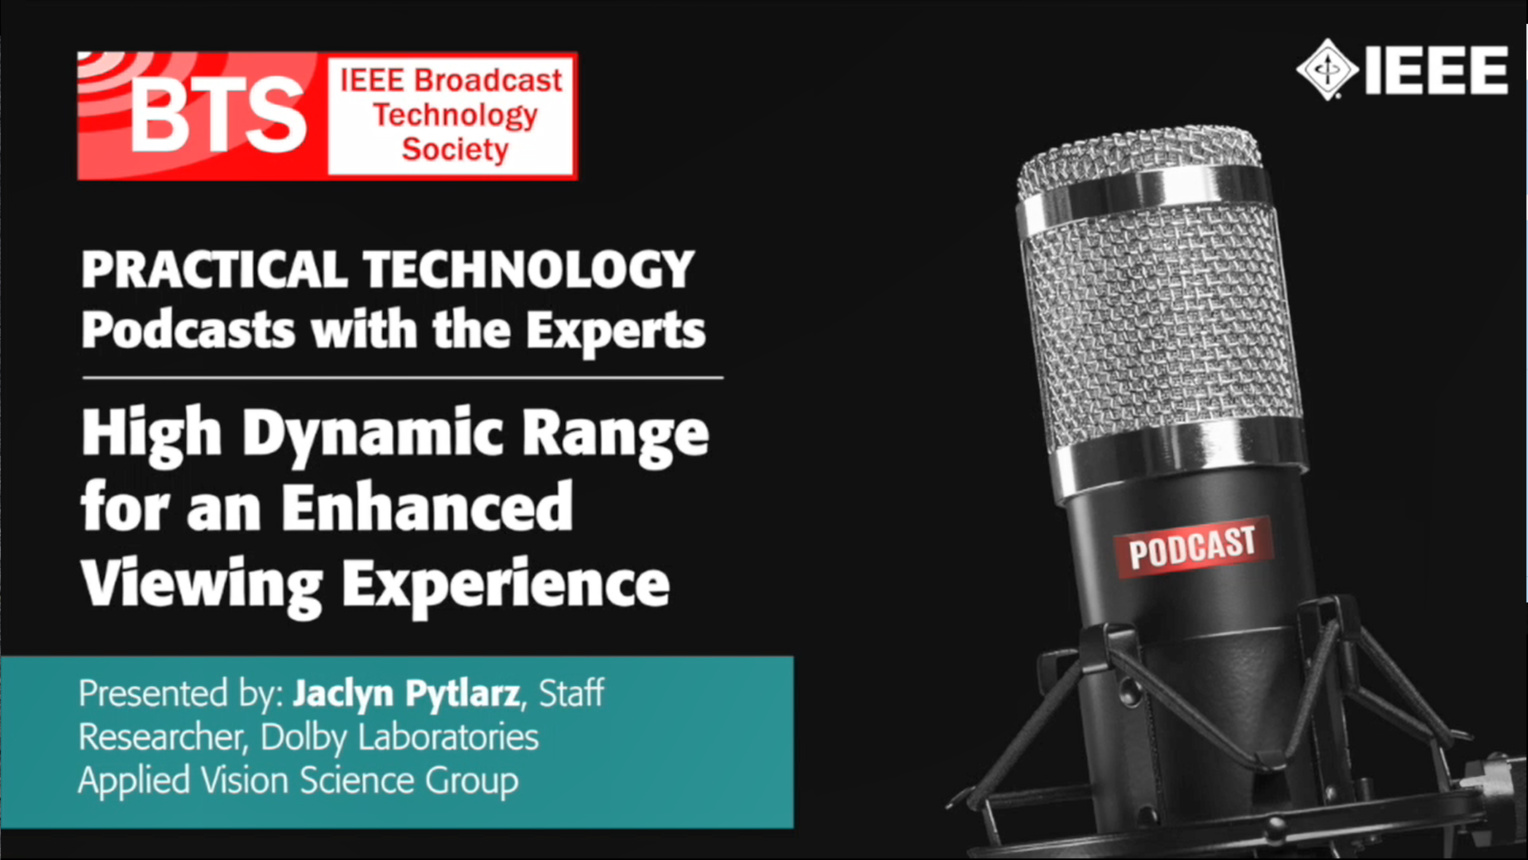 IEEE Broadcast Technology Society